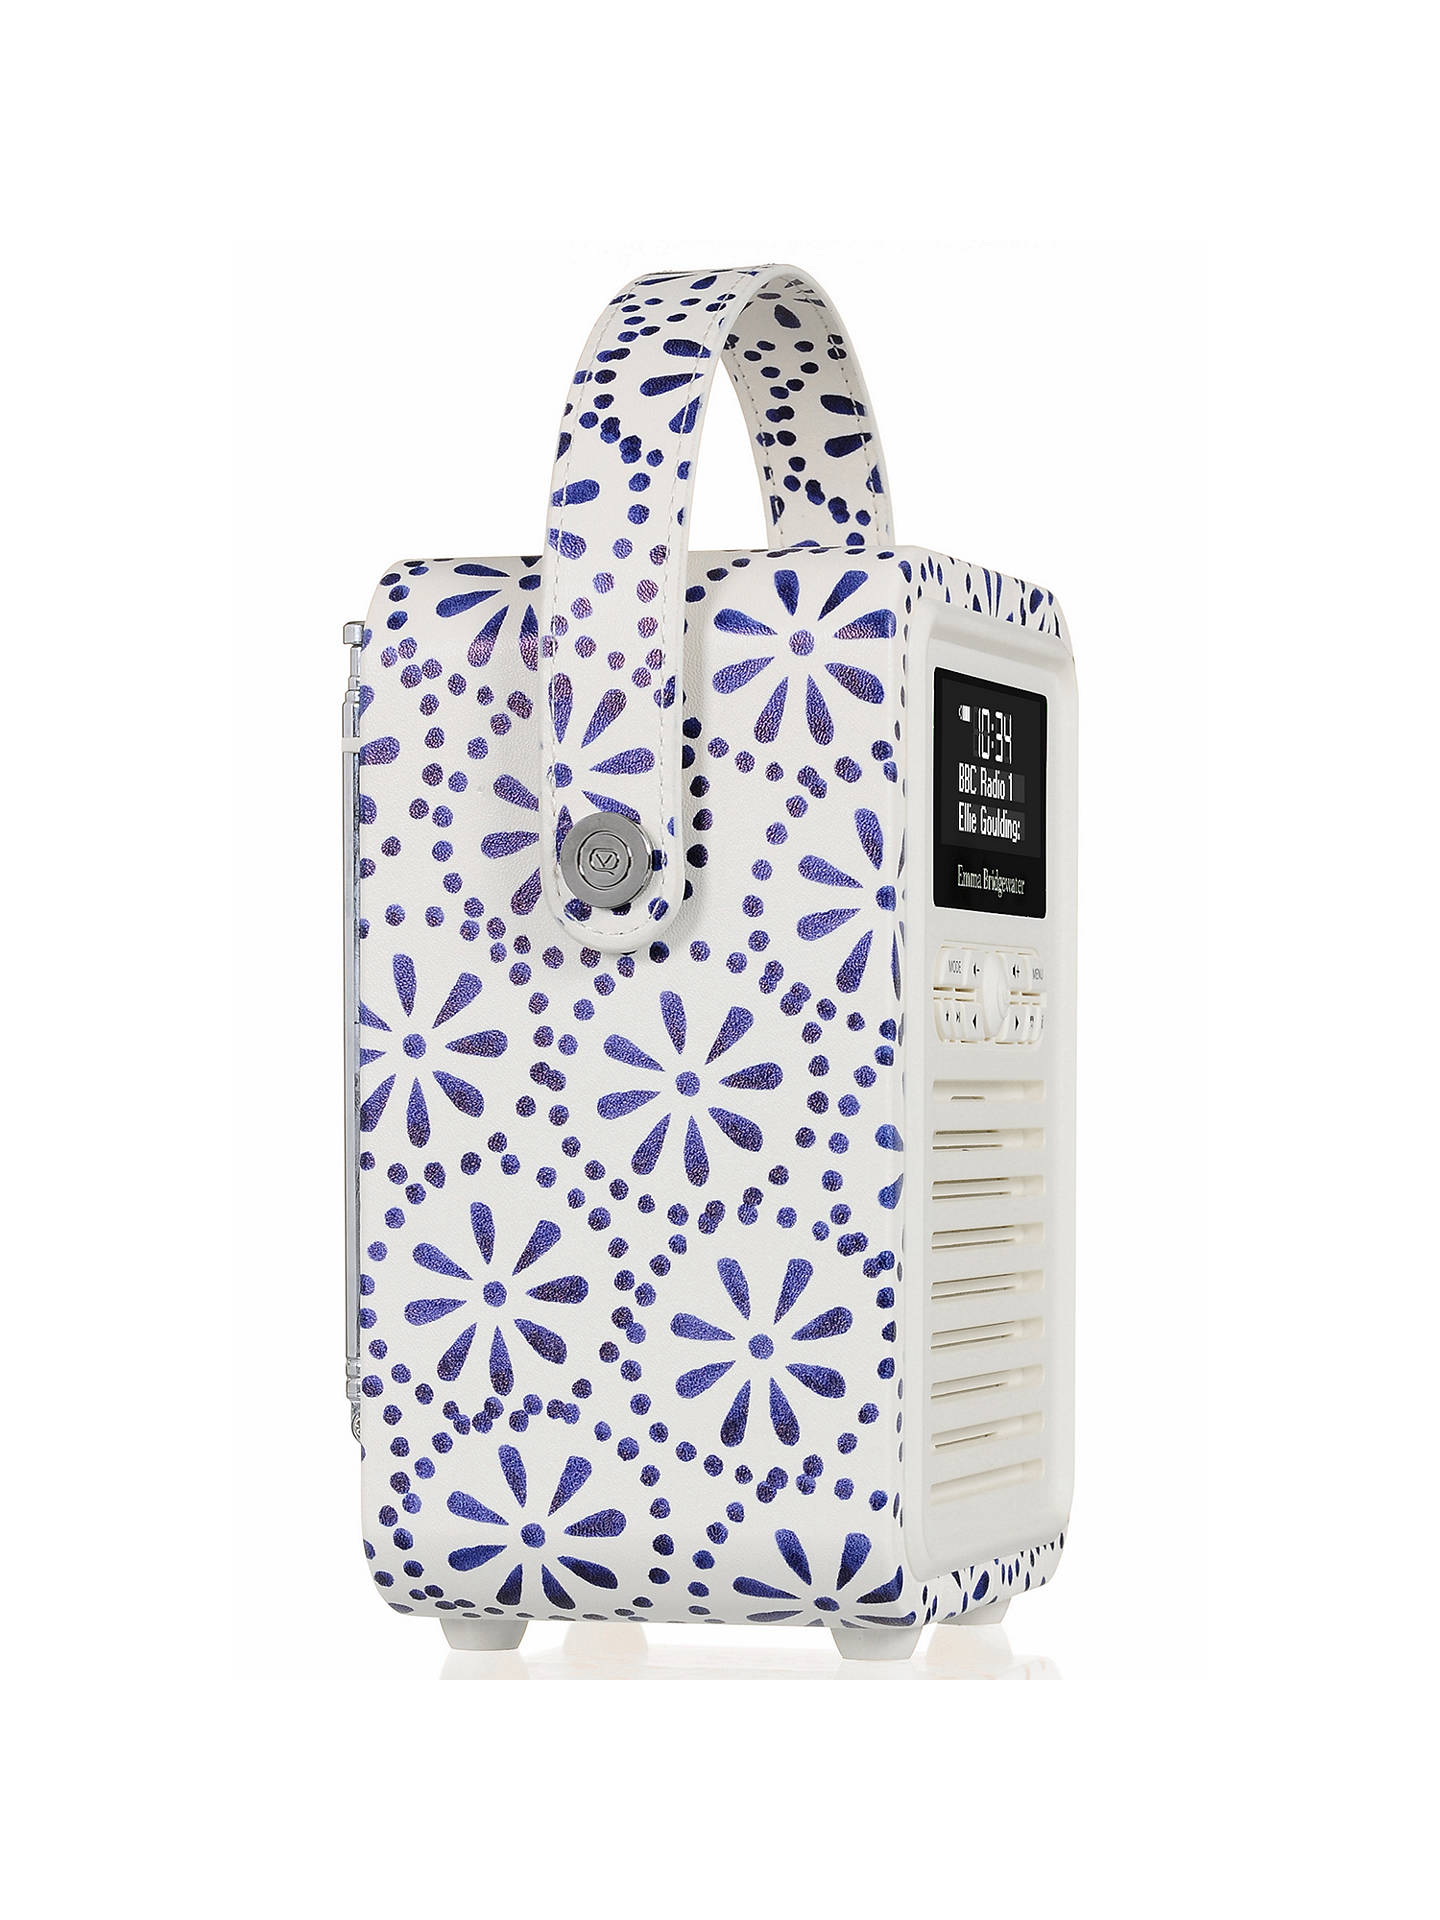 Buy VQ Retro Mini DAB/FM Bluetooth Digital Radio, Emma Bridgewater Patterns, Blue Daisy Online at johnlewis.com